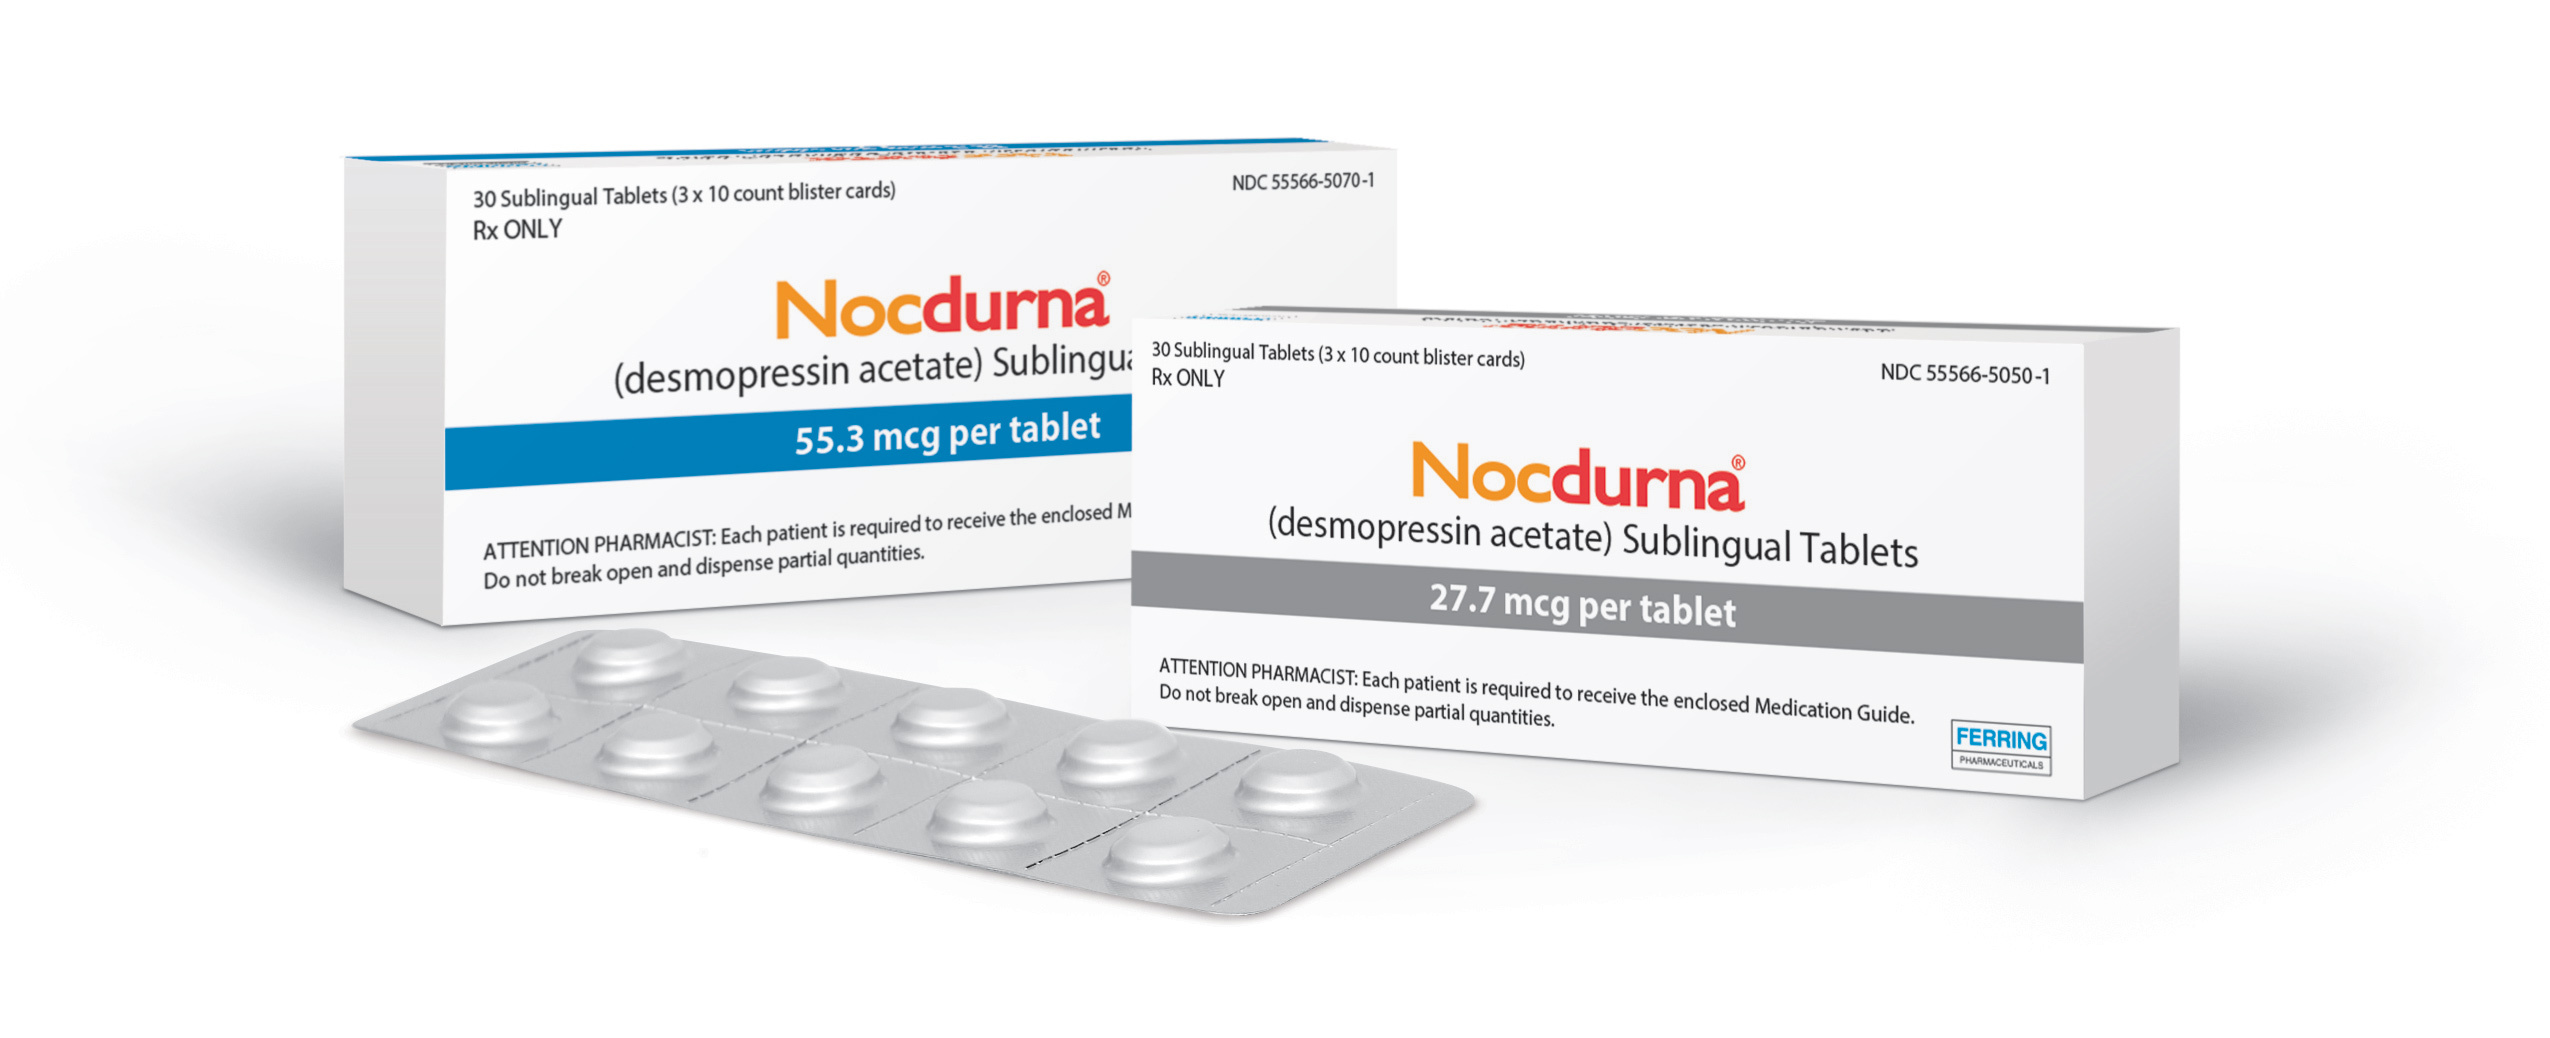 NOCDURNA® (desmopressin acetate) Sublingual Tablets Now Available by